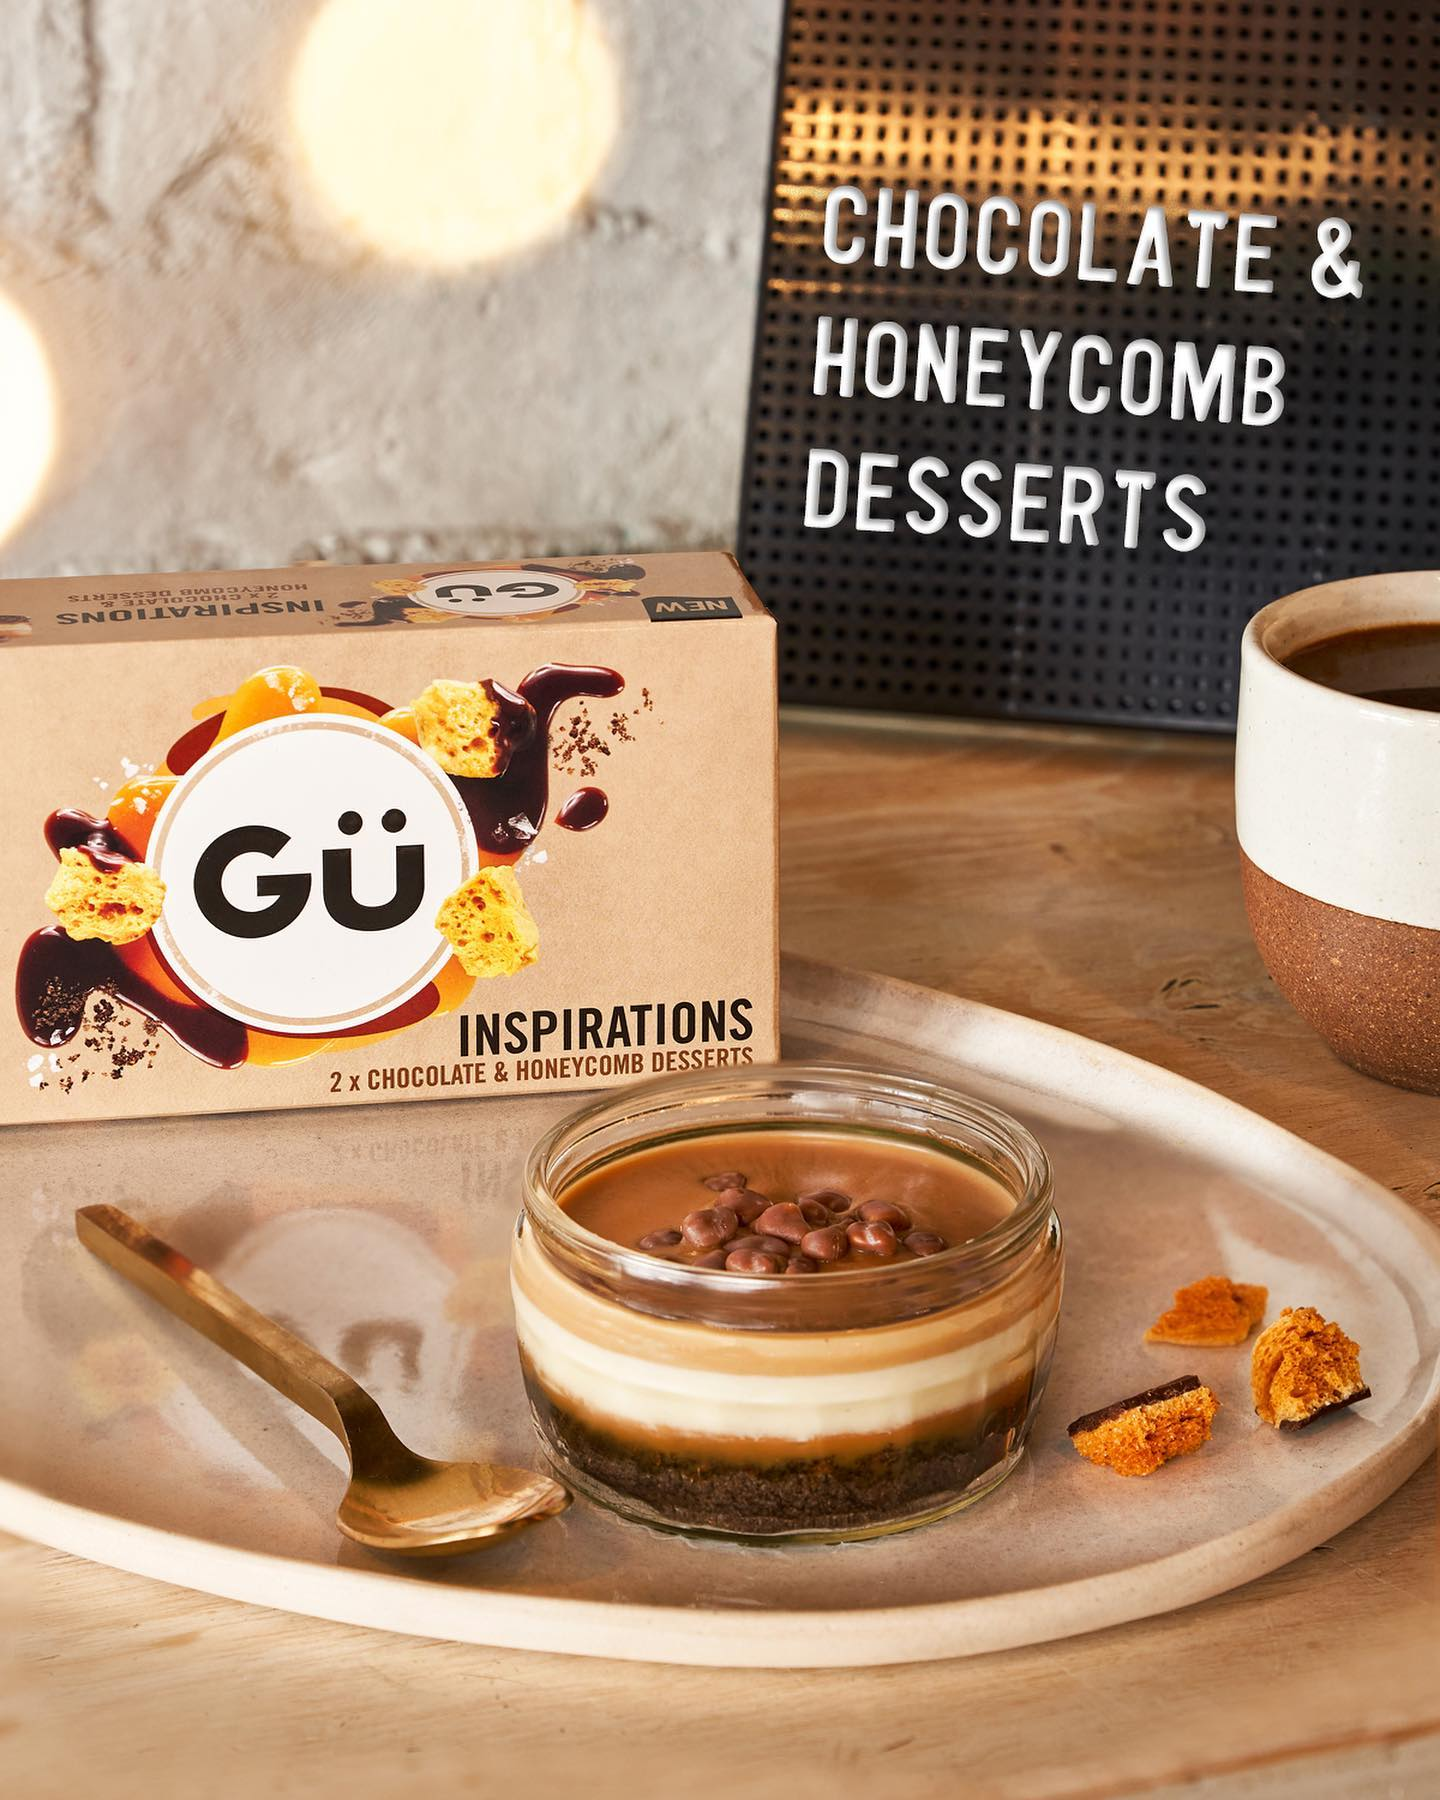 Choosing which Gü to have just got even harder... our new Gü Inspirations Cookies & Cream, Chocolate & Honeycomb and Red Velvet desserts are available now in Sainsbury's & Waitrose stores!